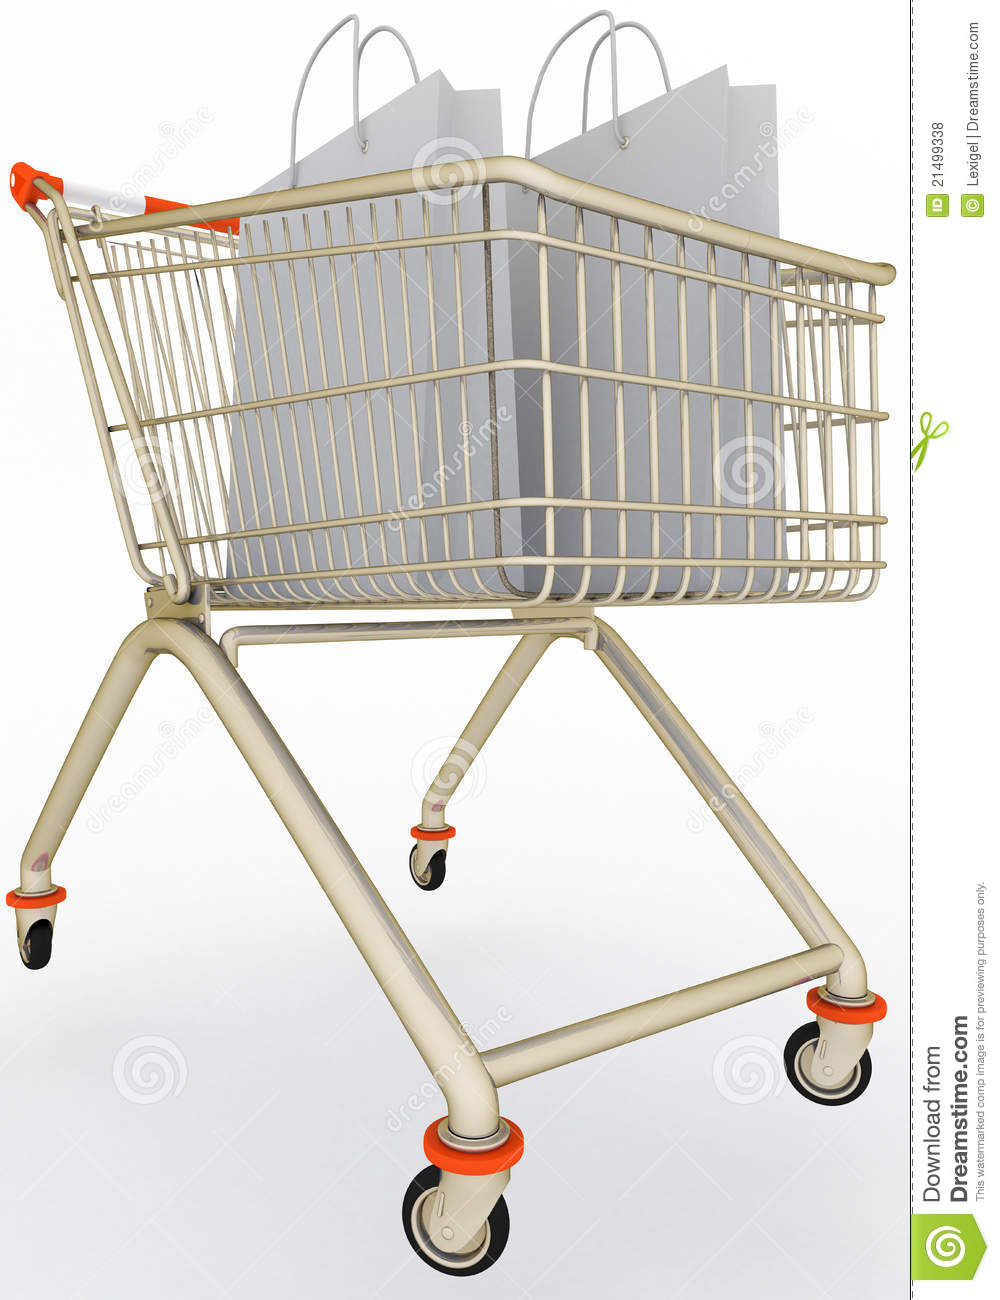 Master thesis about shopping cart